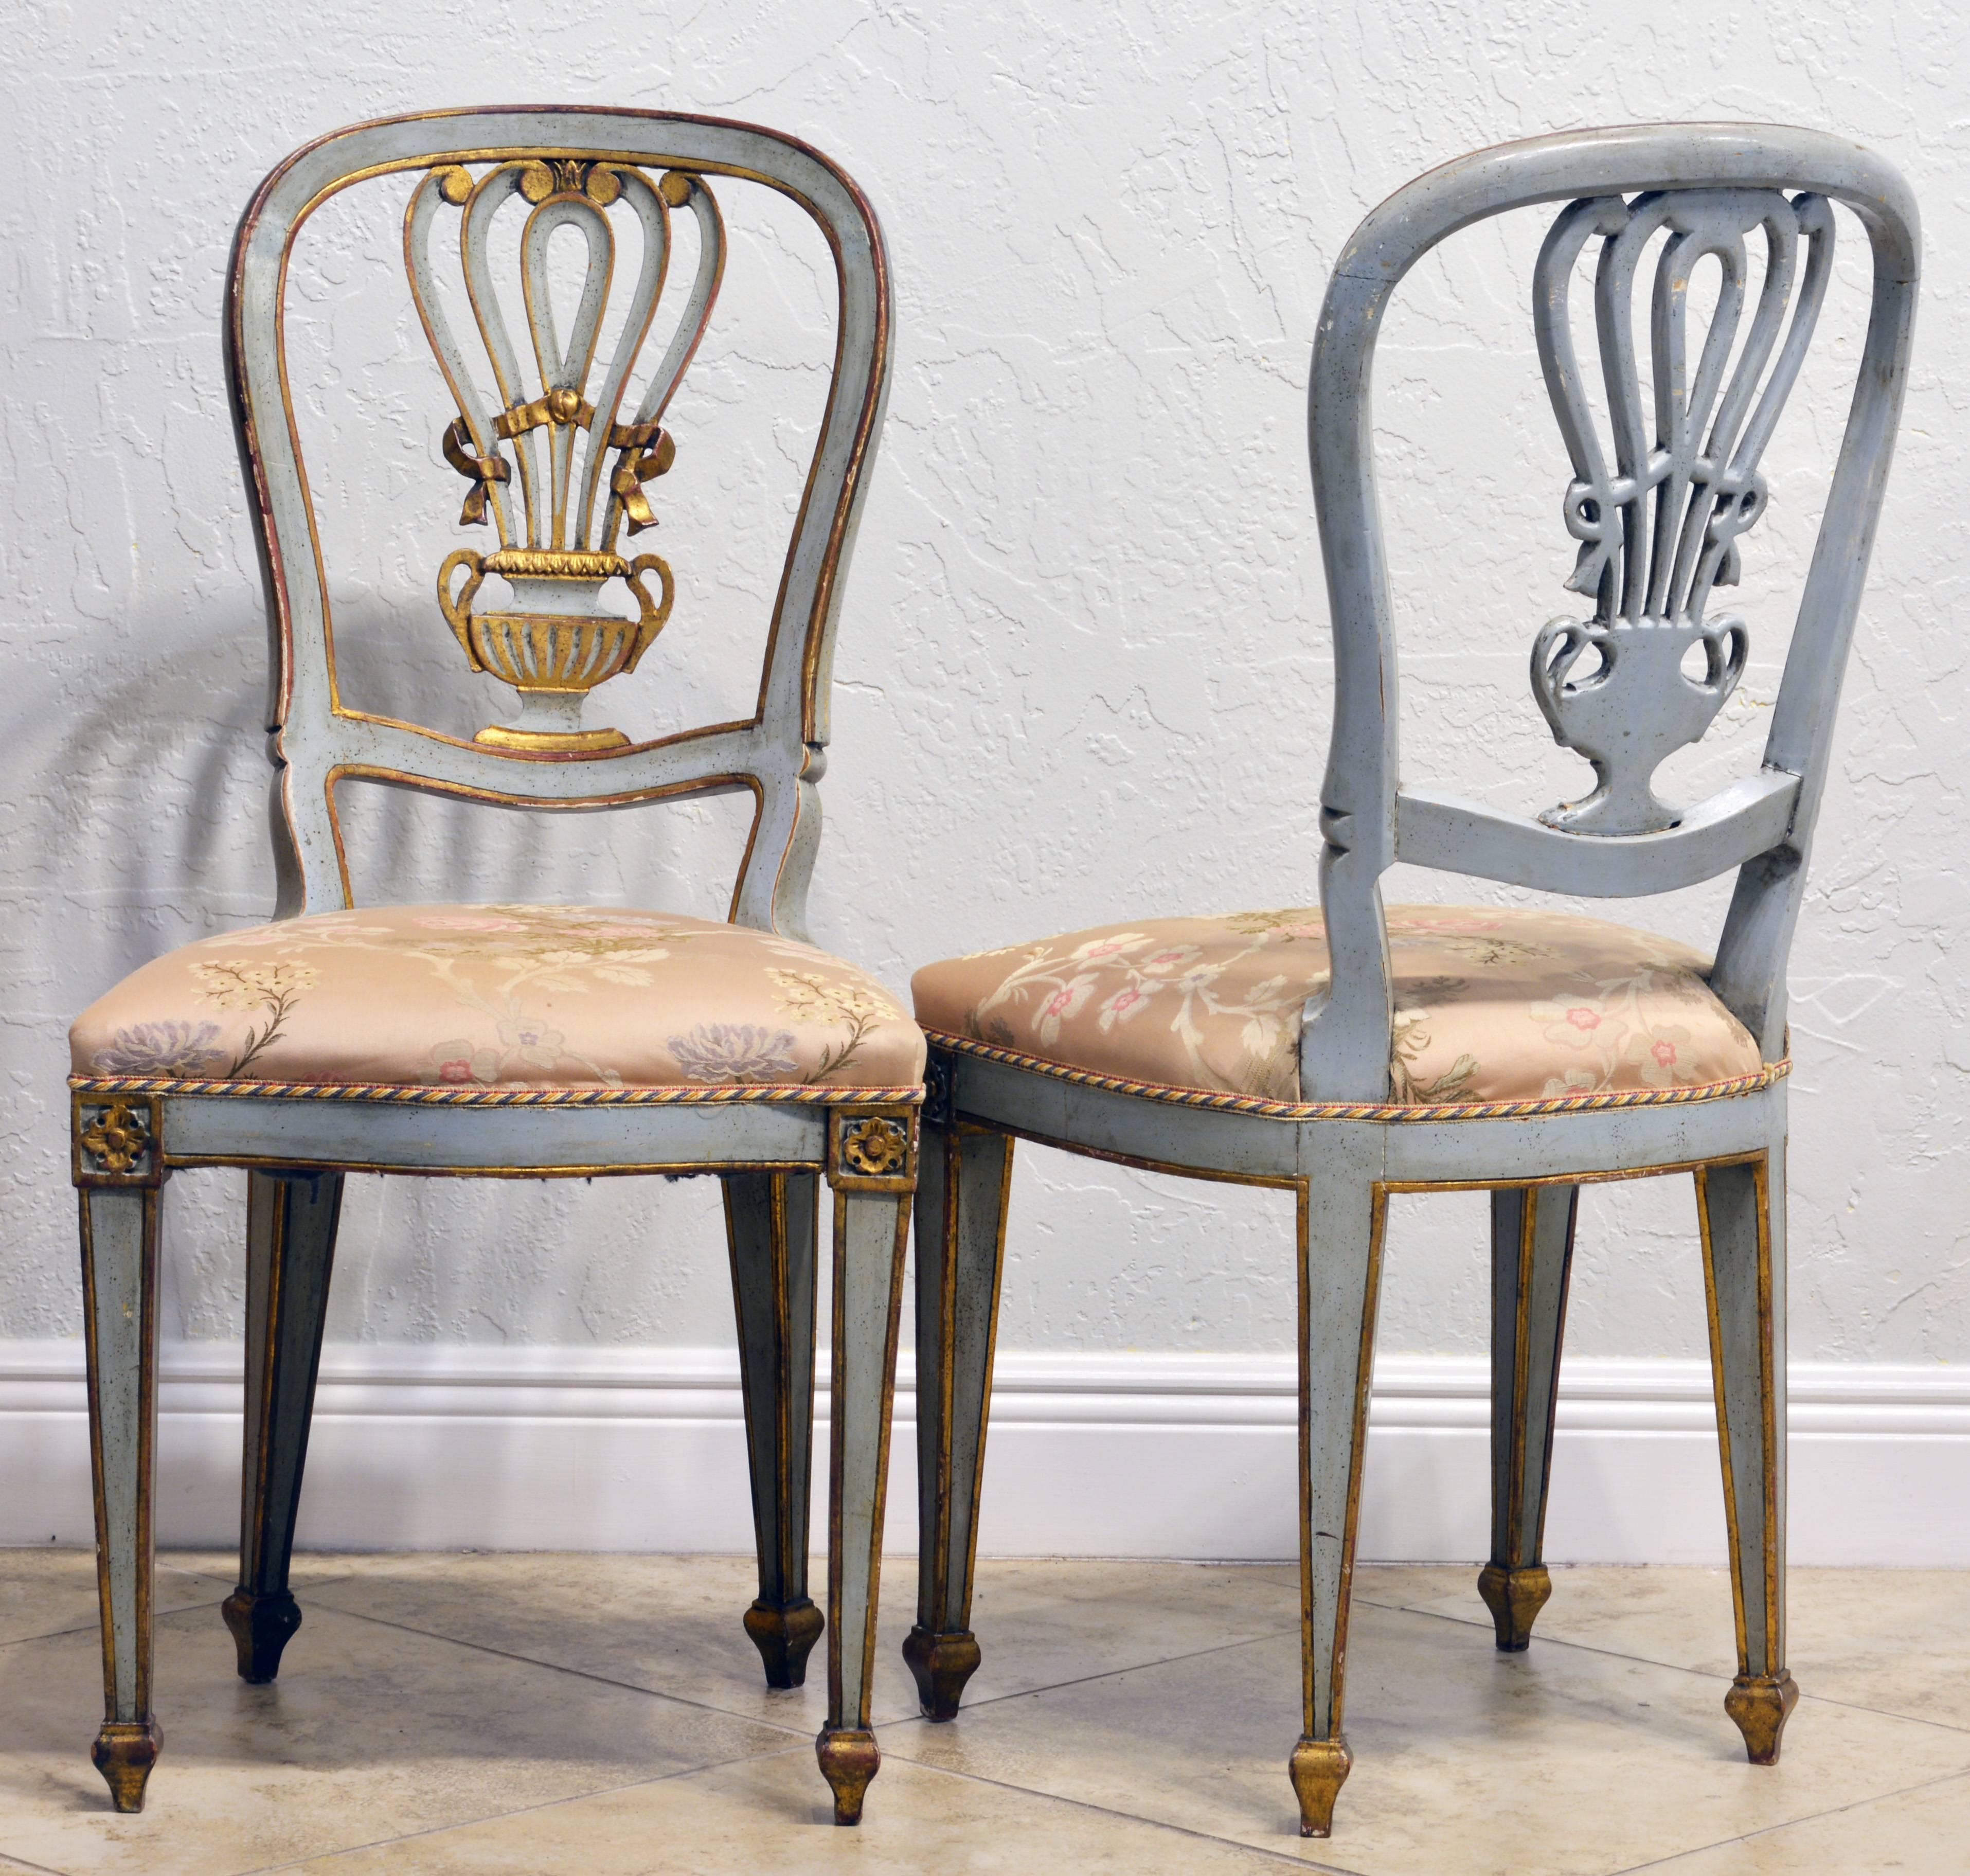 Lovely Pair Of Louis XV Inspired Italian Gilt And Grey Paint Salon Chairs  In Good Condition